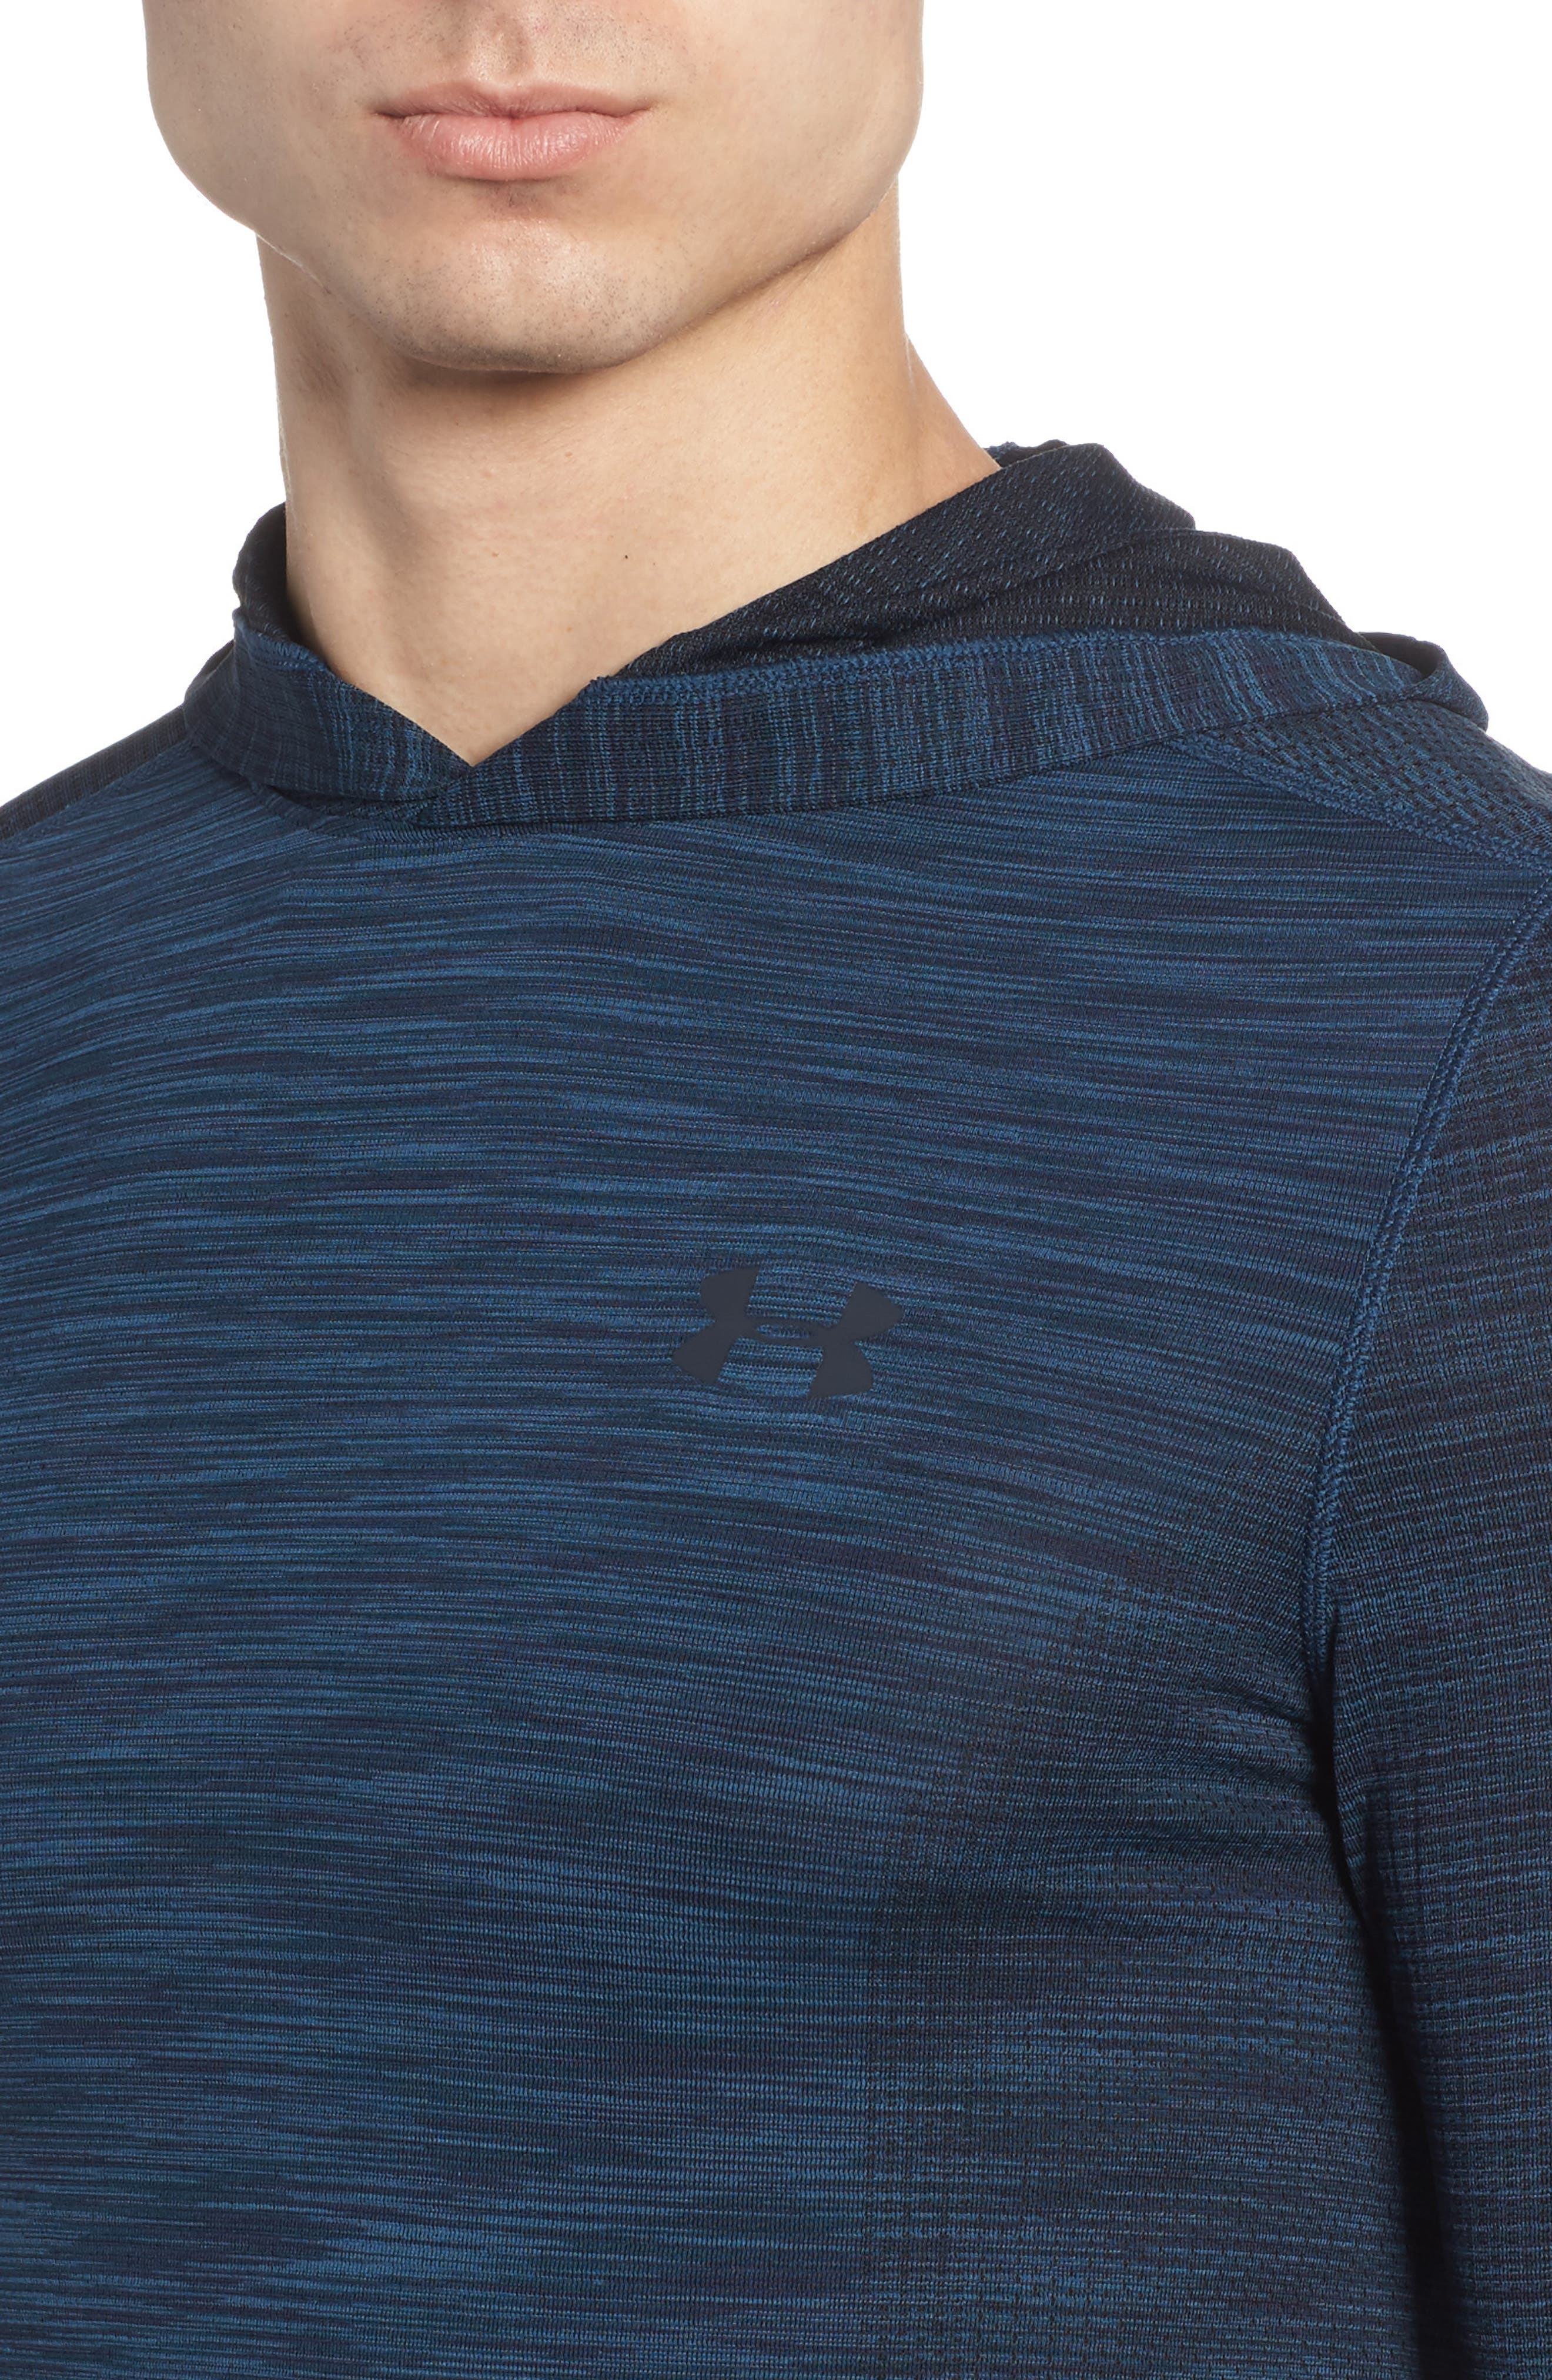 Threadbone Fitted Seamless Hoodie,                             Alternate thumbnail 22, color,